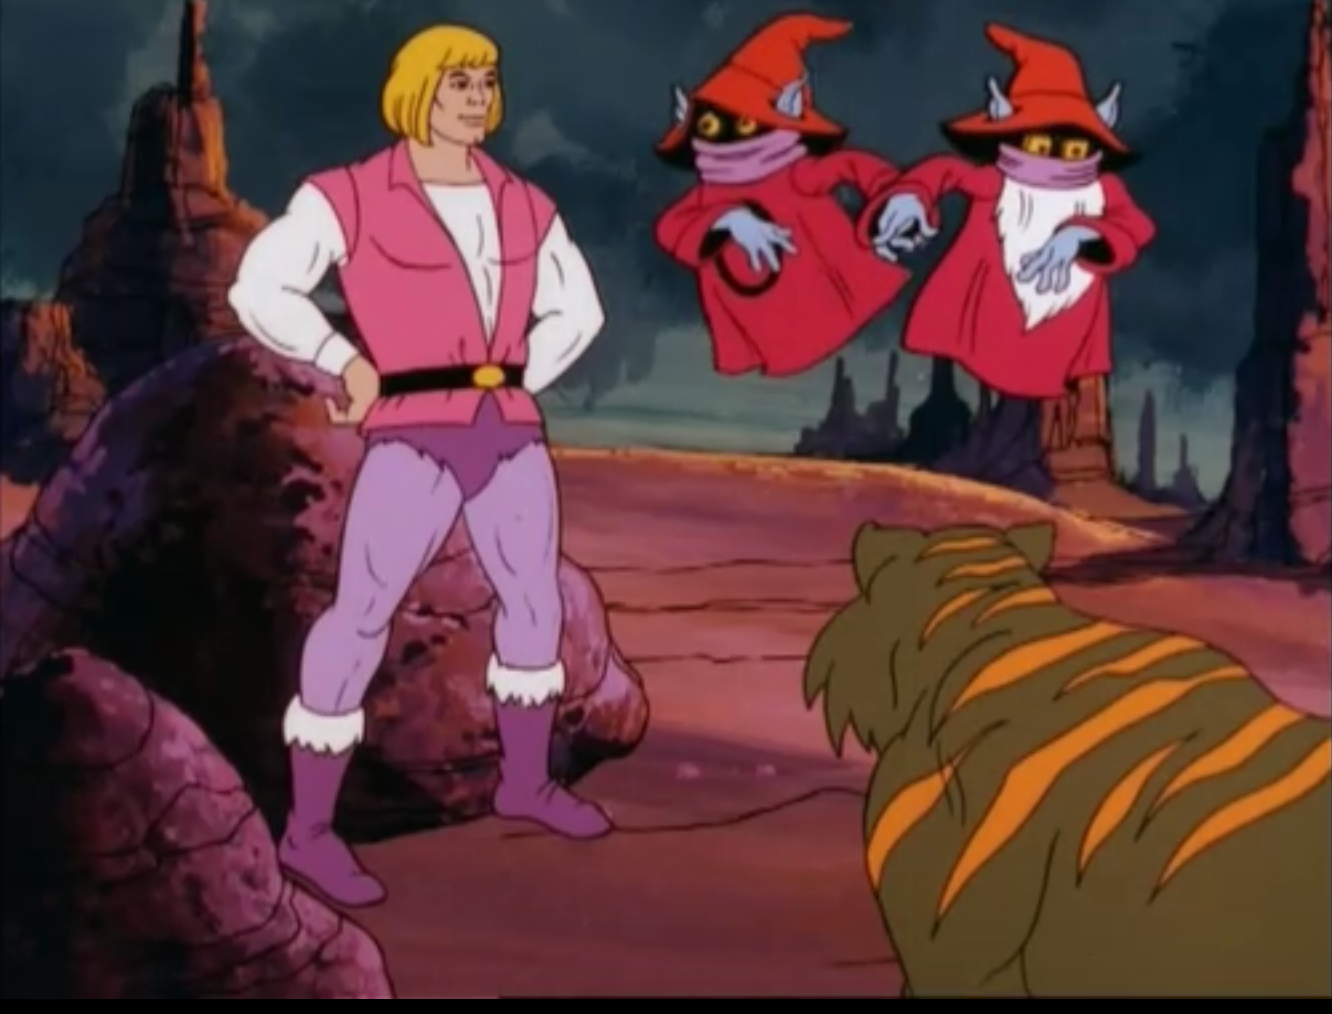 27-7-Whered-He-Man-Go.png